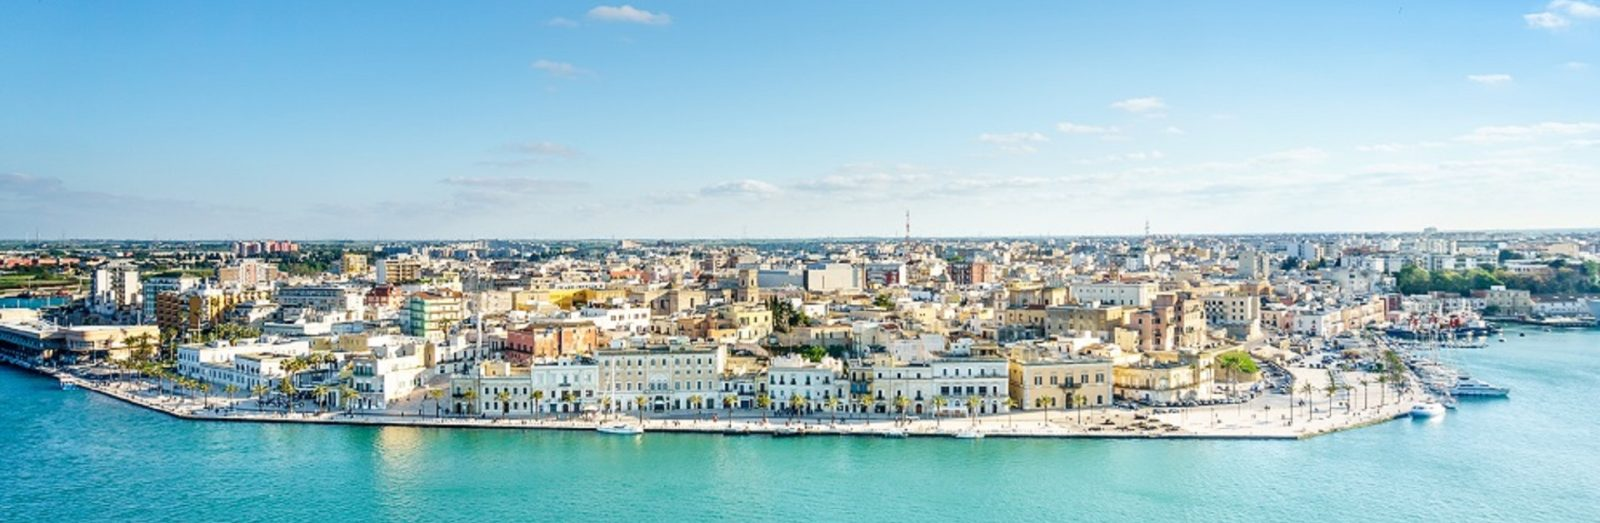 Shore excursions in Brindisi